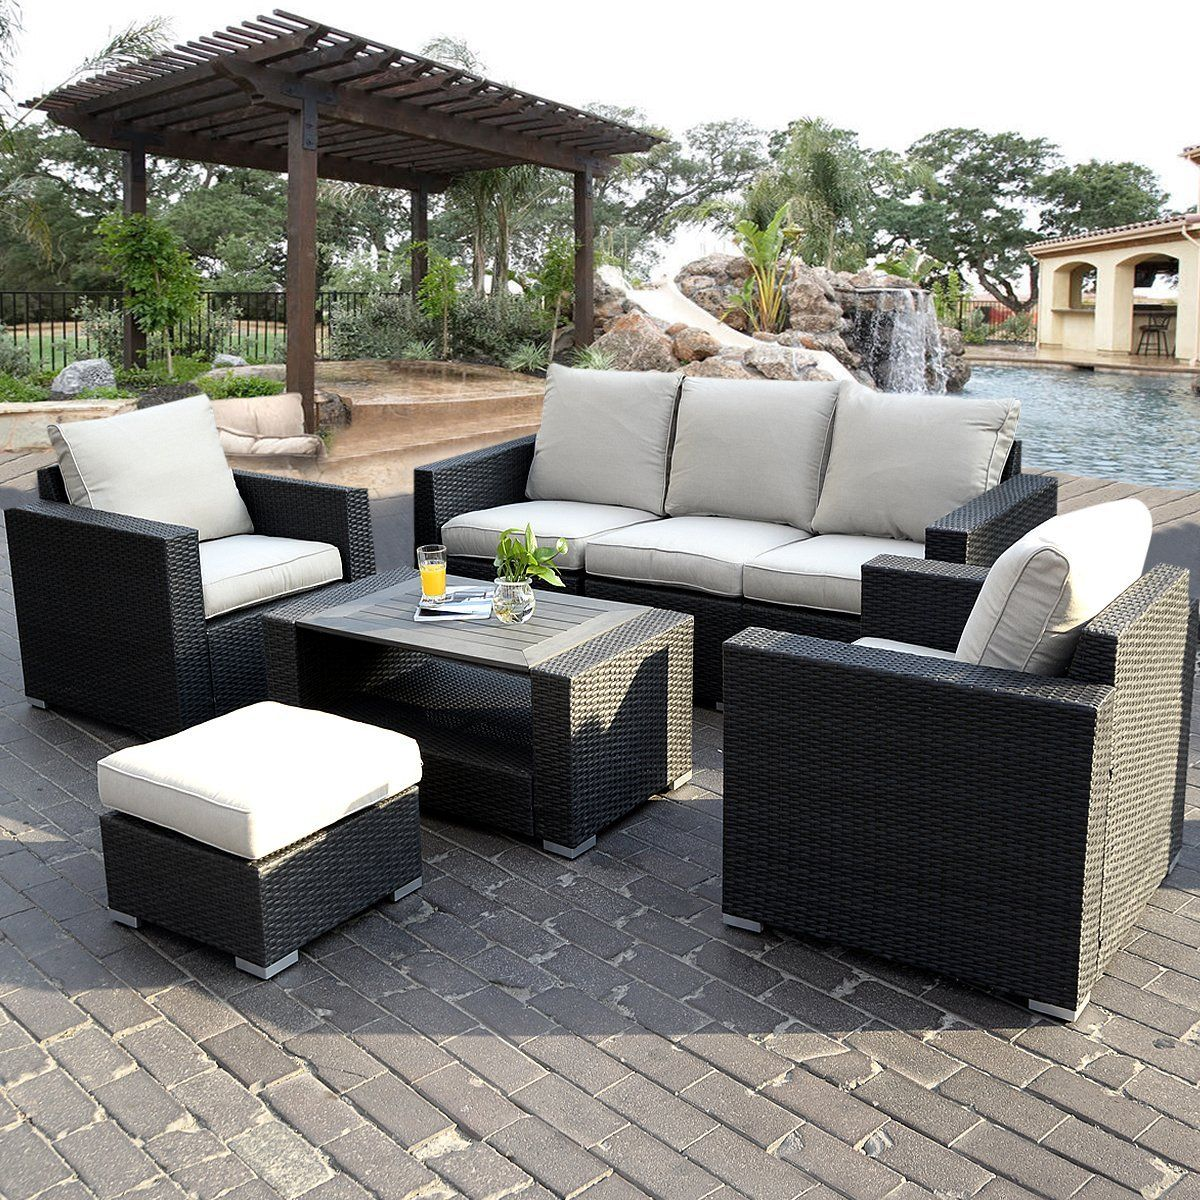 Patio Sofa Sets Uk 132nitimifotografienl